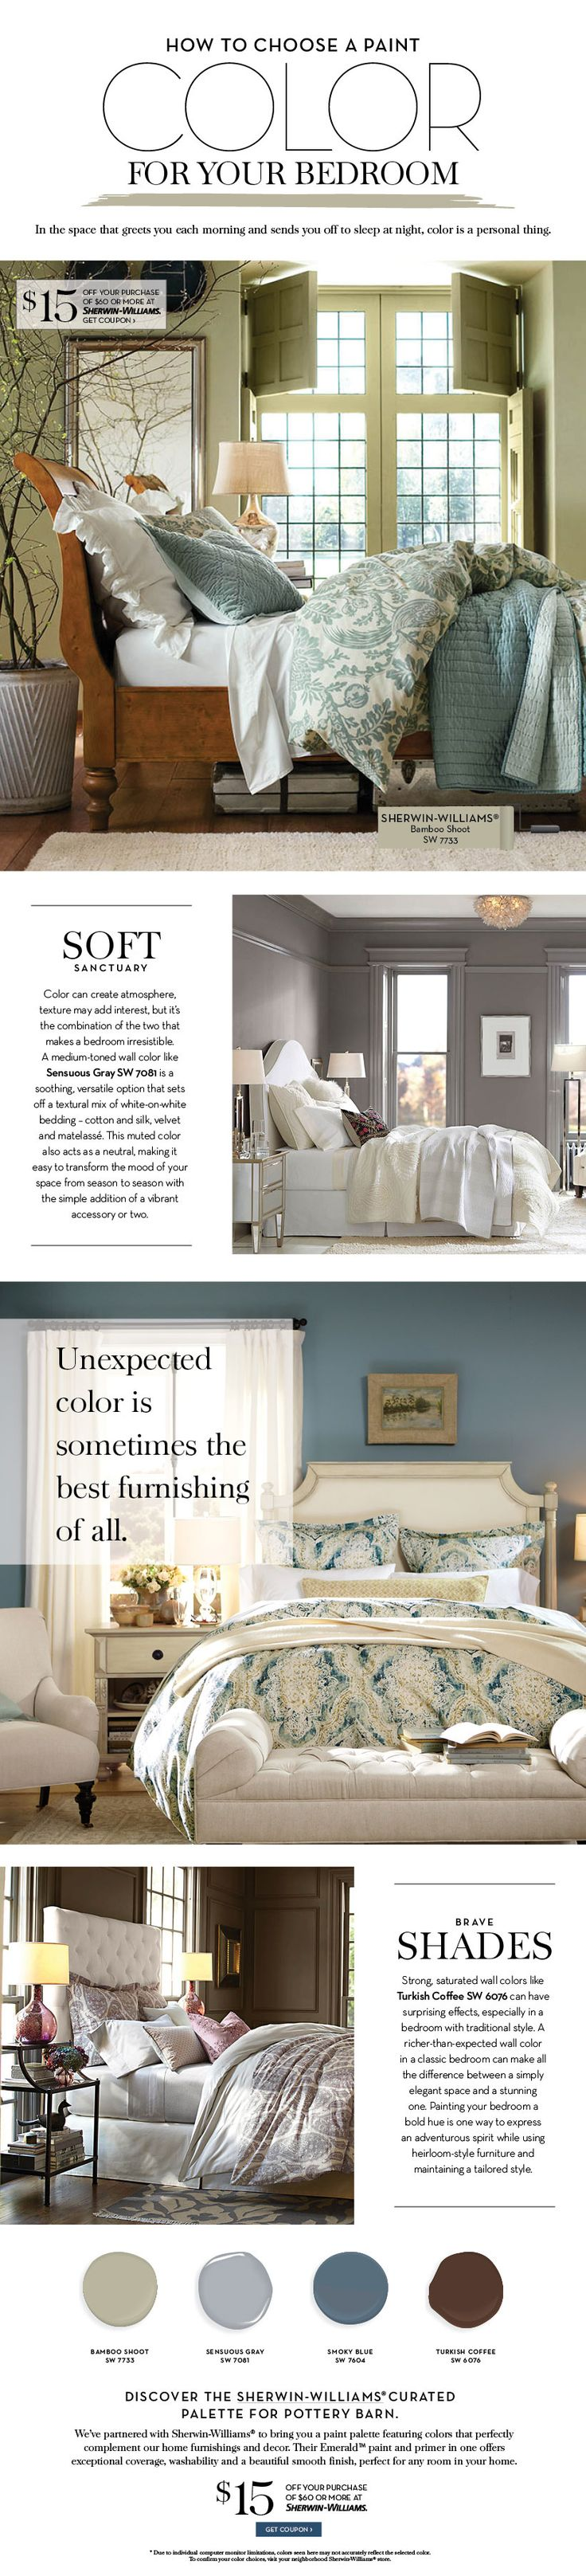 Choose a Paint Color For Your Bedroom   Pottery Barn. 284 best Paint Colors and Color Schemes images on Pinterest